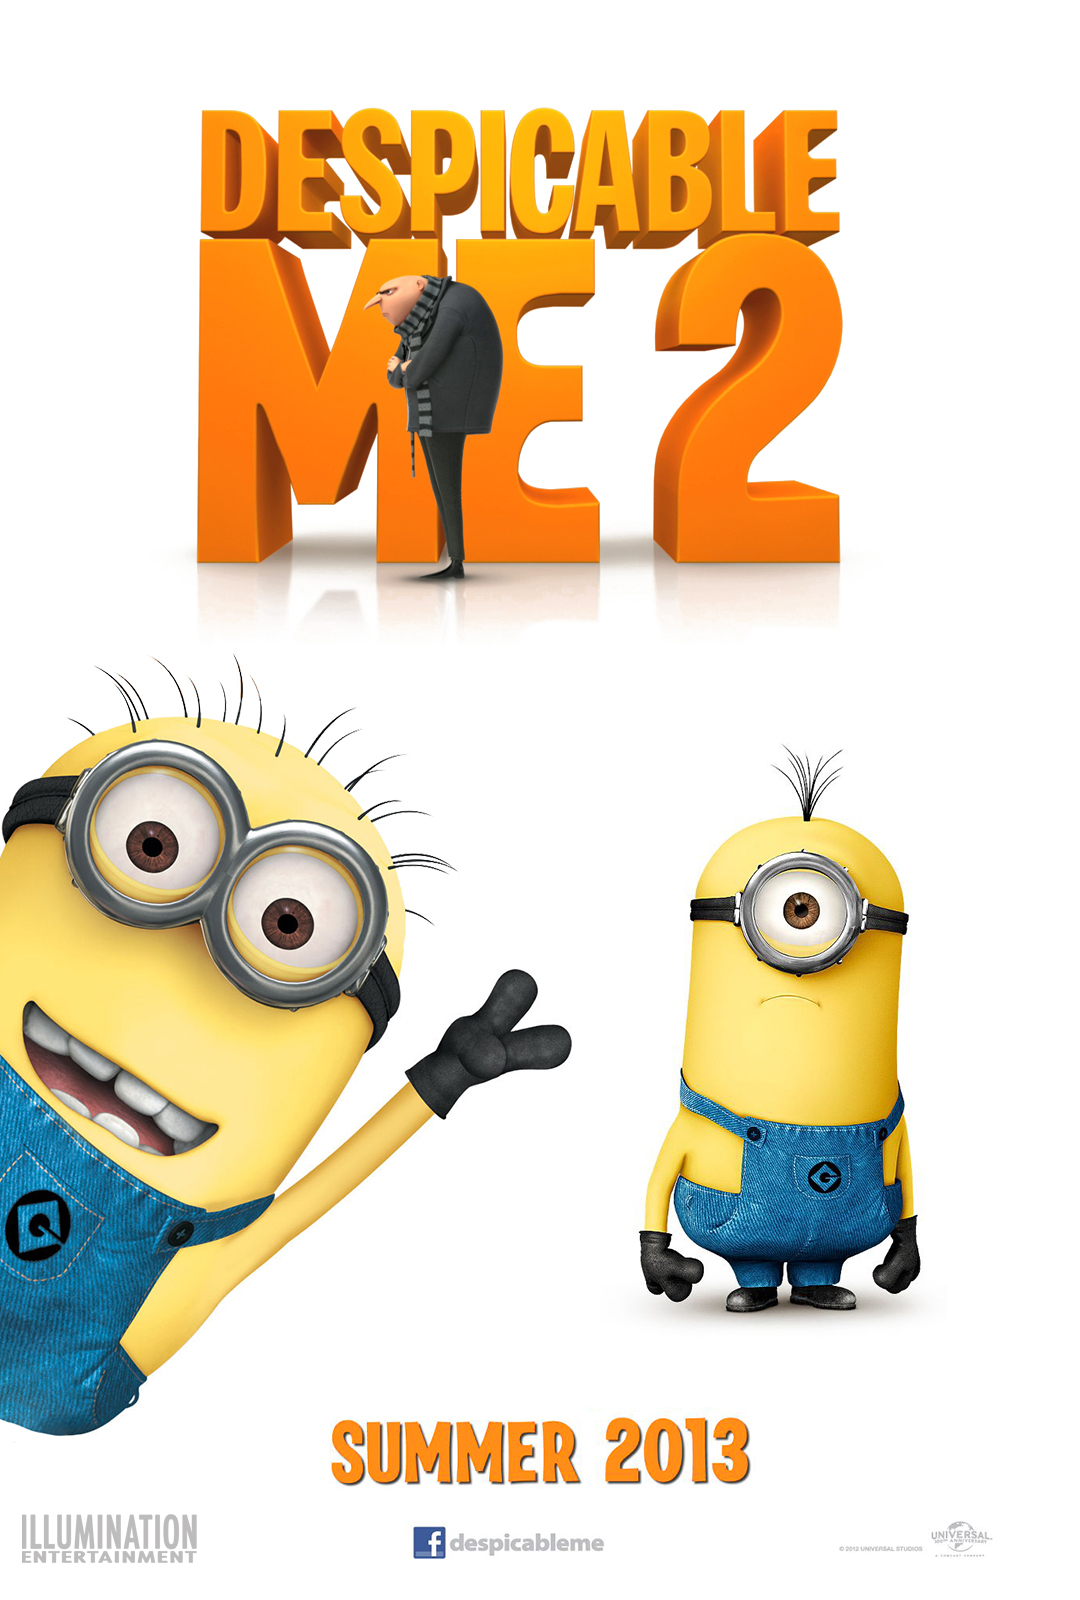 Despicable Me 2 Poster By Illumination Cg Animation Blog